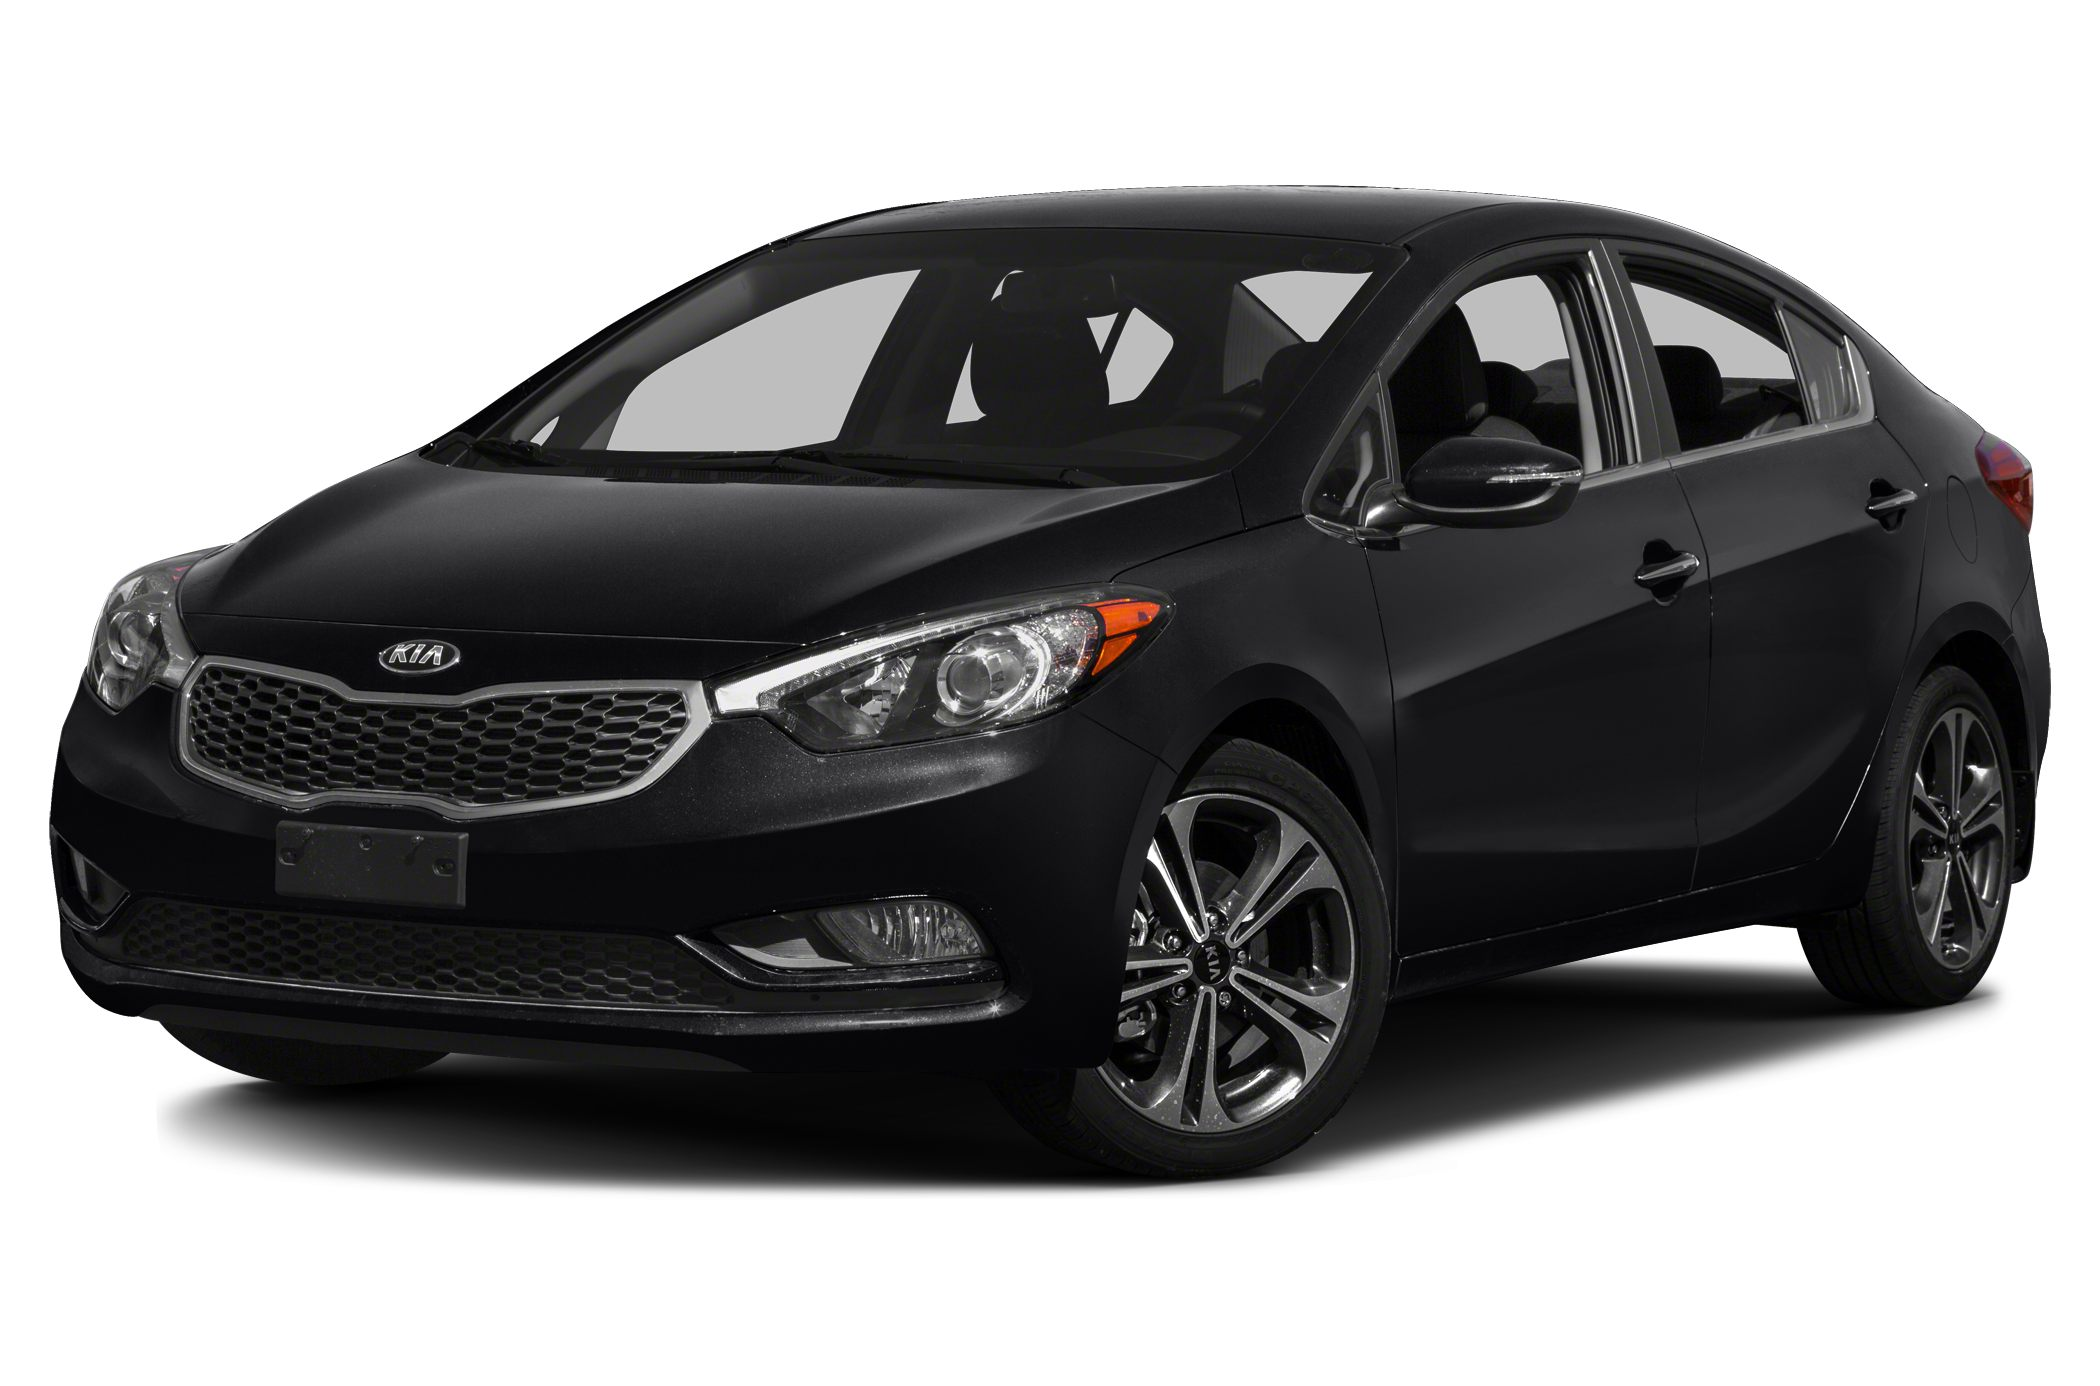 2014 Kia Forte LX Sedan for sale in Portland for $15,995 with 41,433 miles.